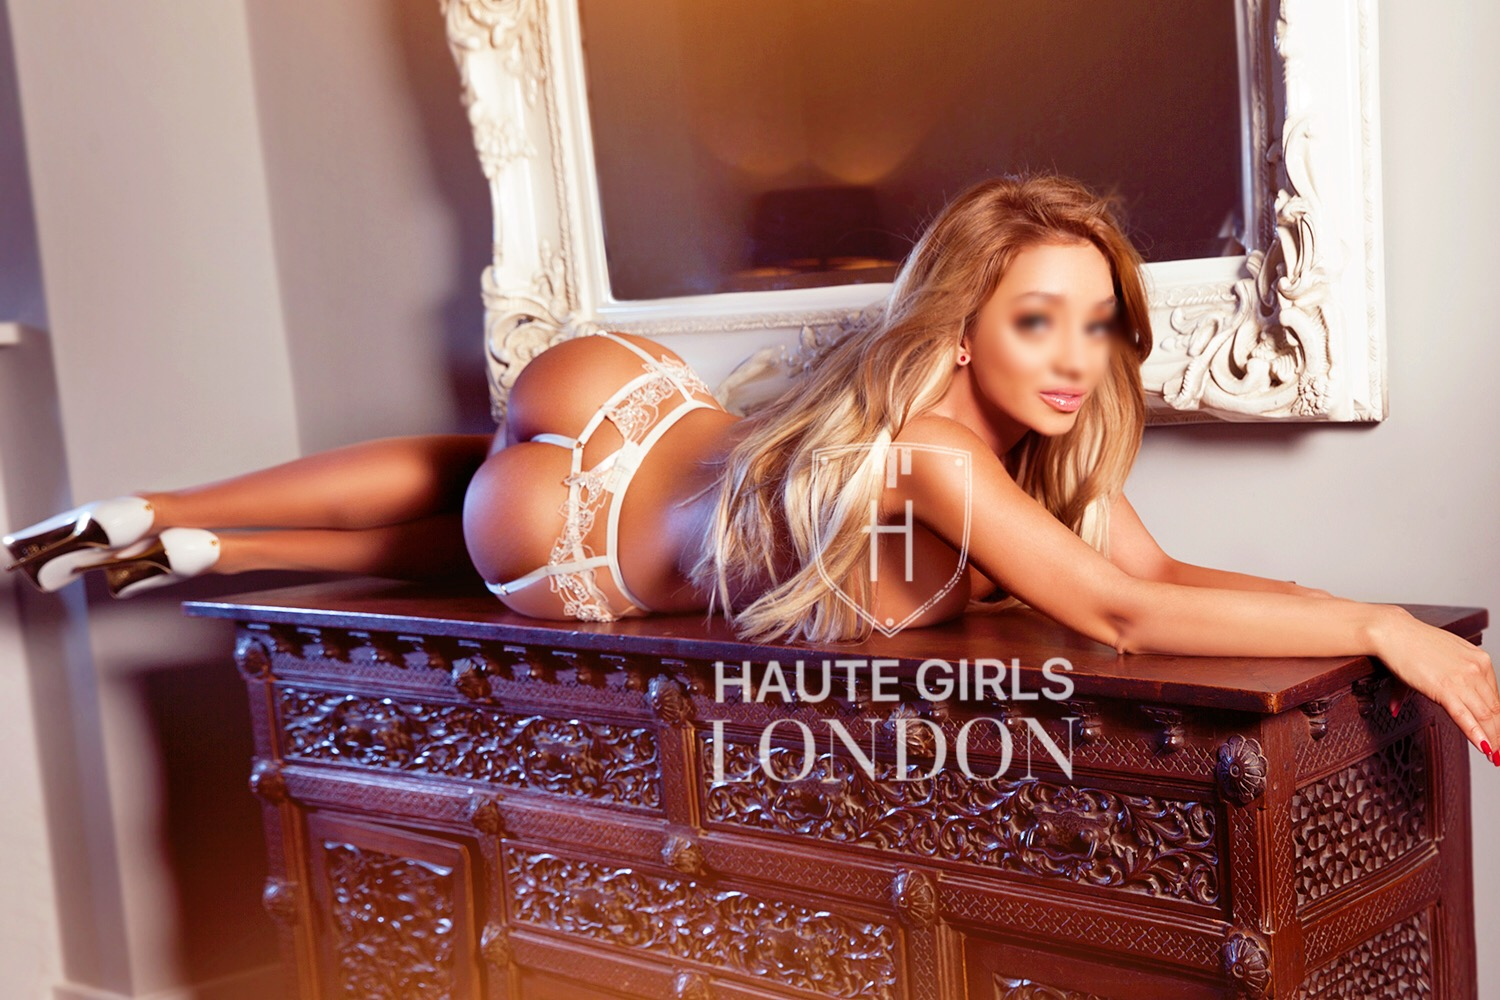 London escort Gia advises elderly clients to self isolate and refuses to see highly vulnerable clients during the Coronavirus pandemic